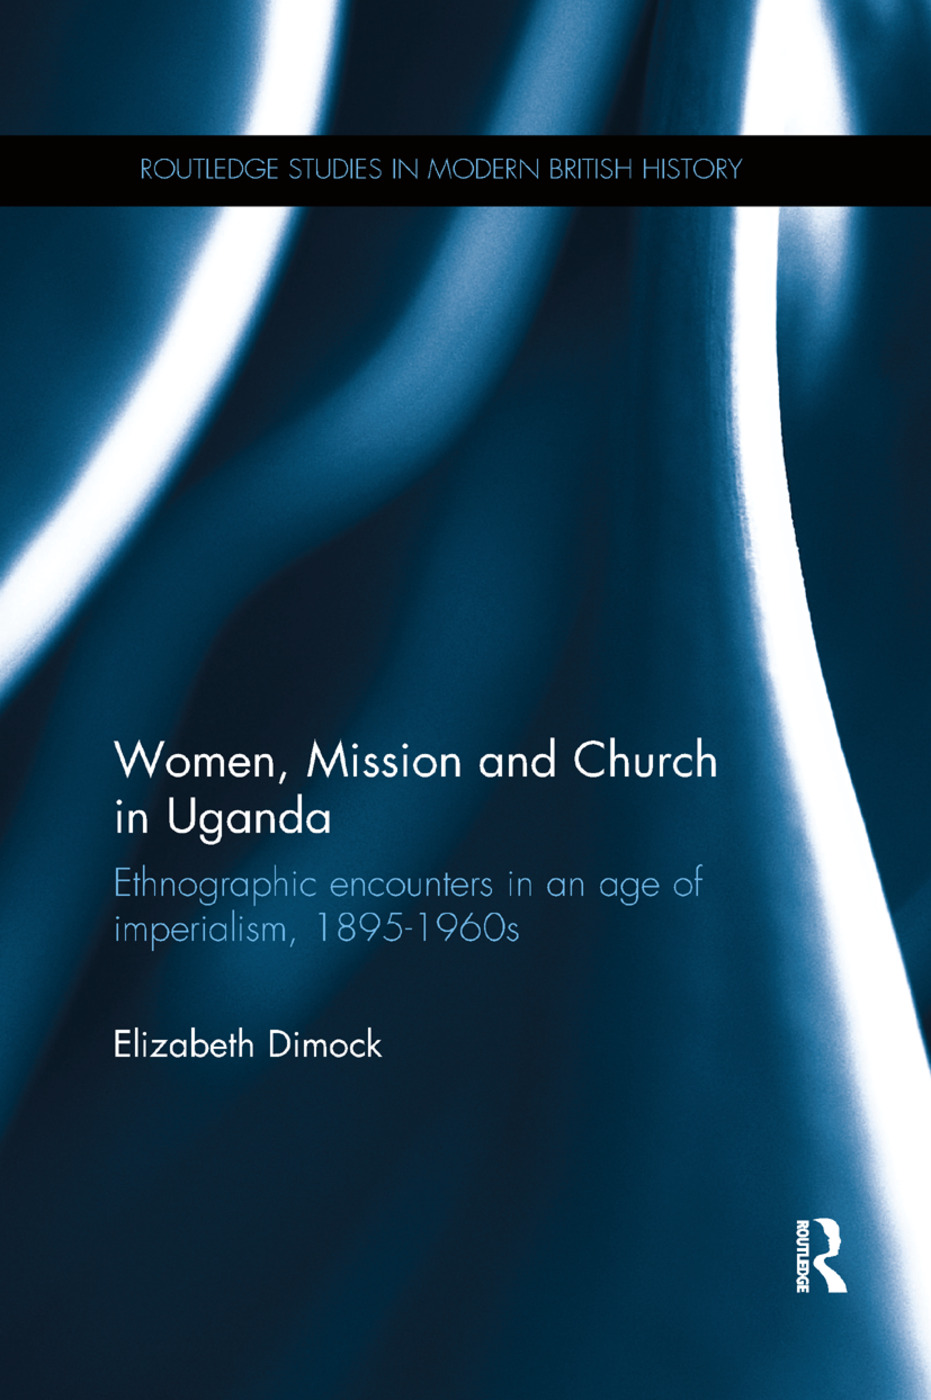 Women, Mission and Church in Uganda: Ethnographic encounters in an age of imperialism, 1895-1960s book cover